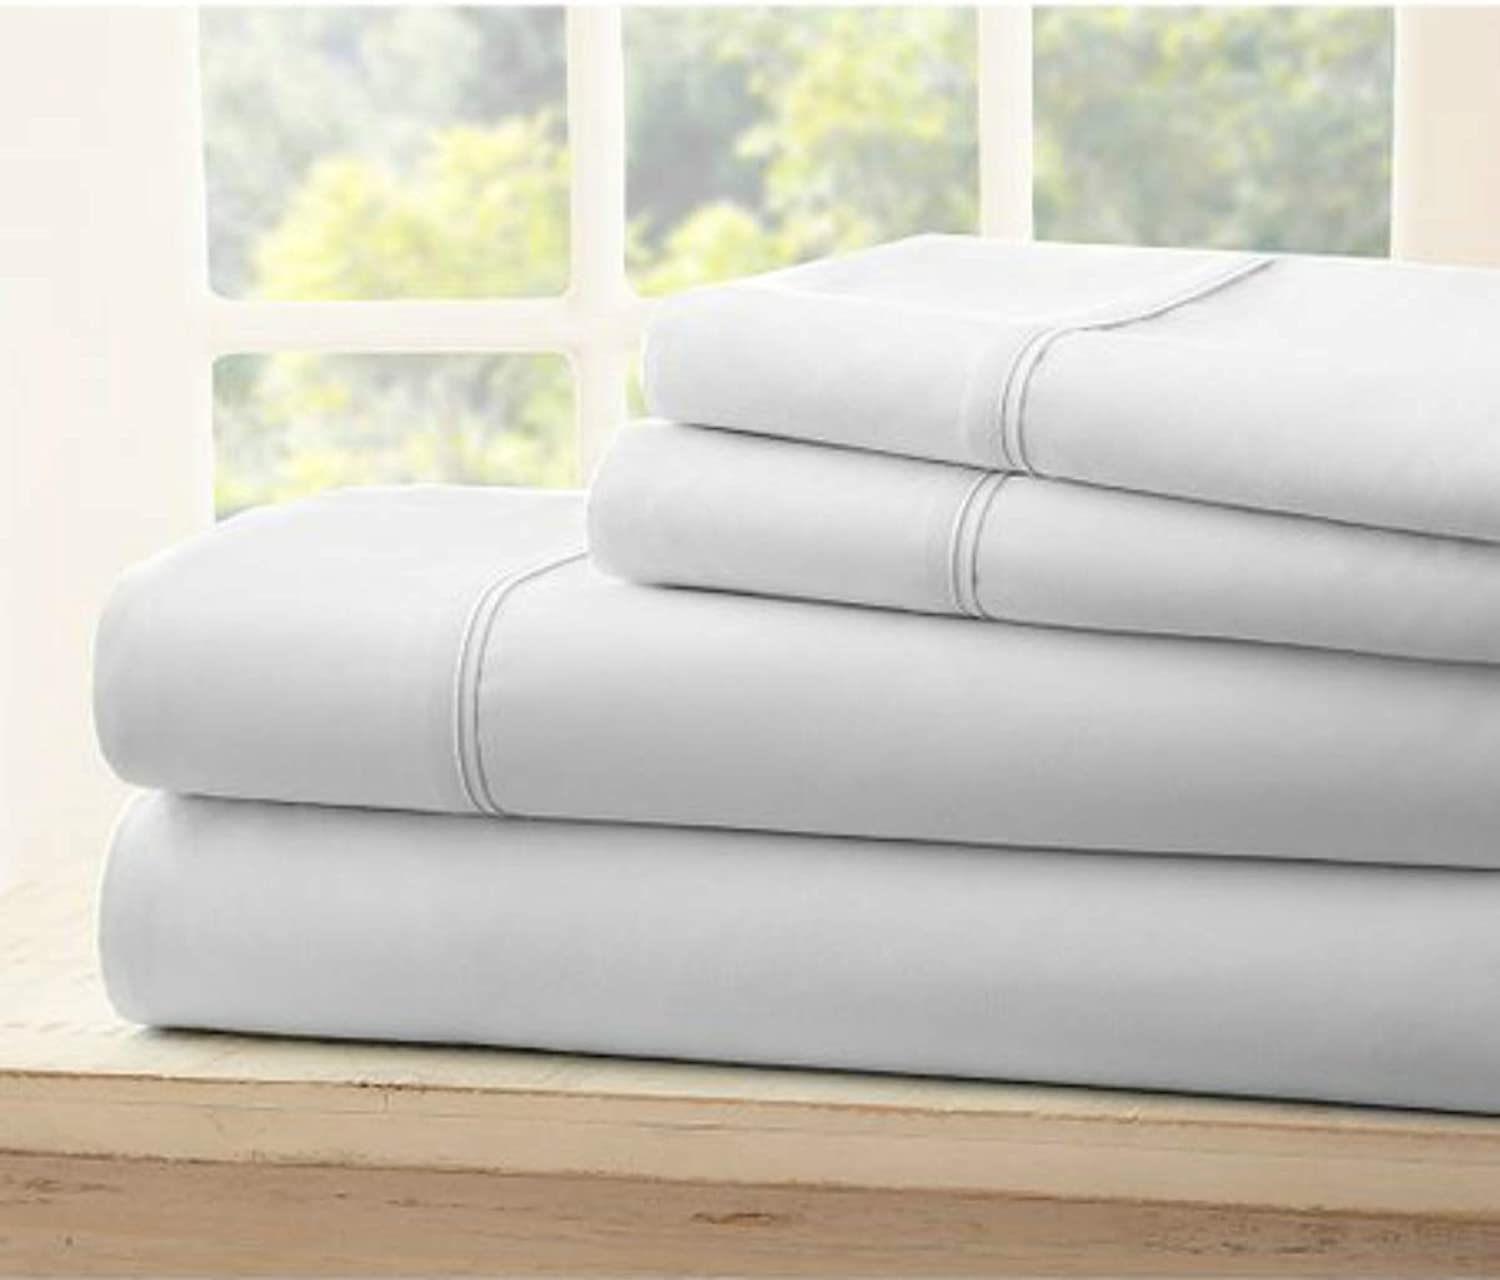 Fabricalicious Linen Bed Sheet Set Microfiber Wrinkle Fade and Stain Resistant 4Piece Bedding Set Twin XL Light Grey